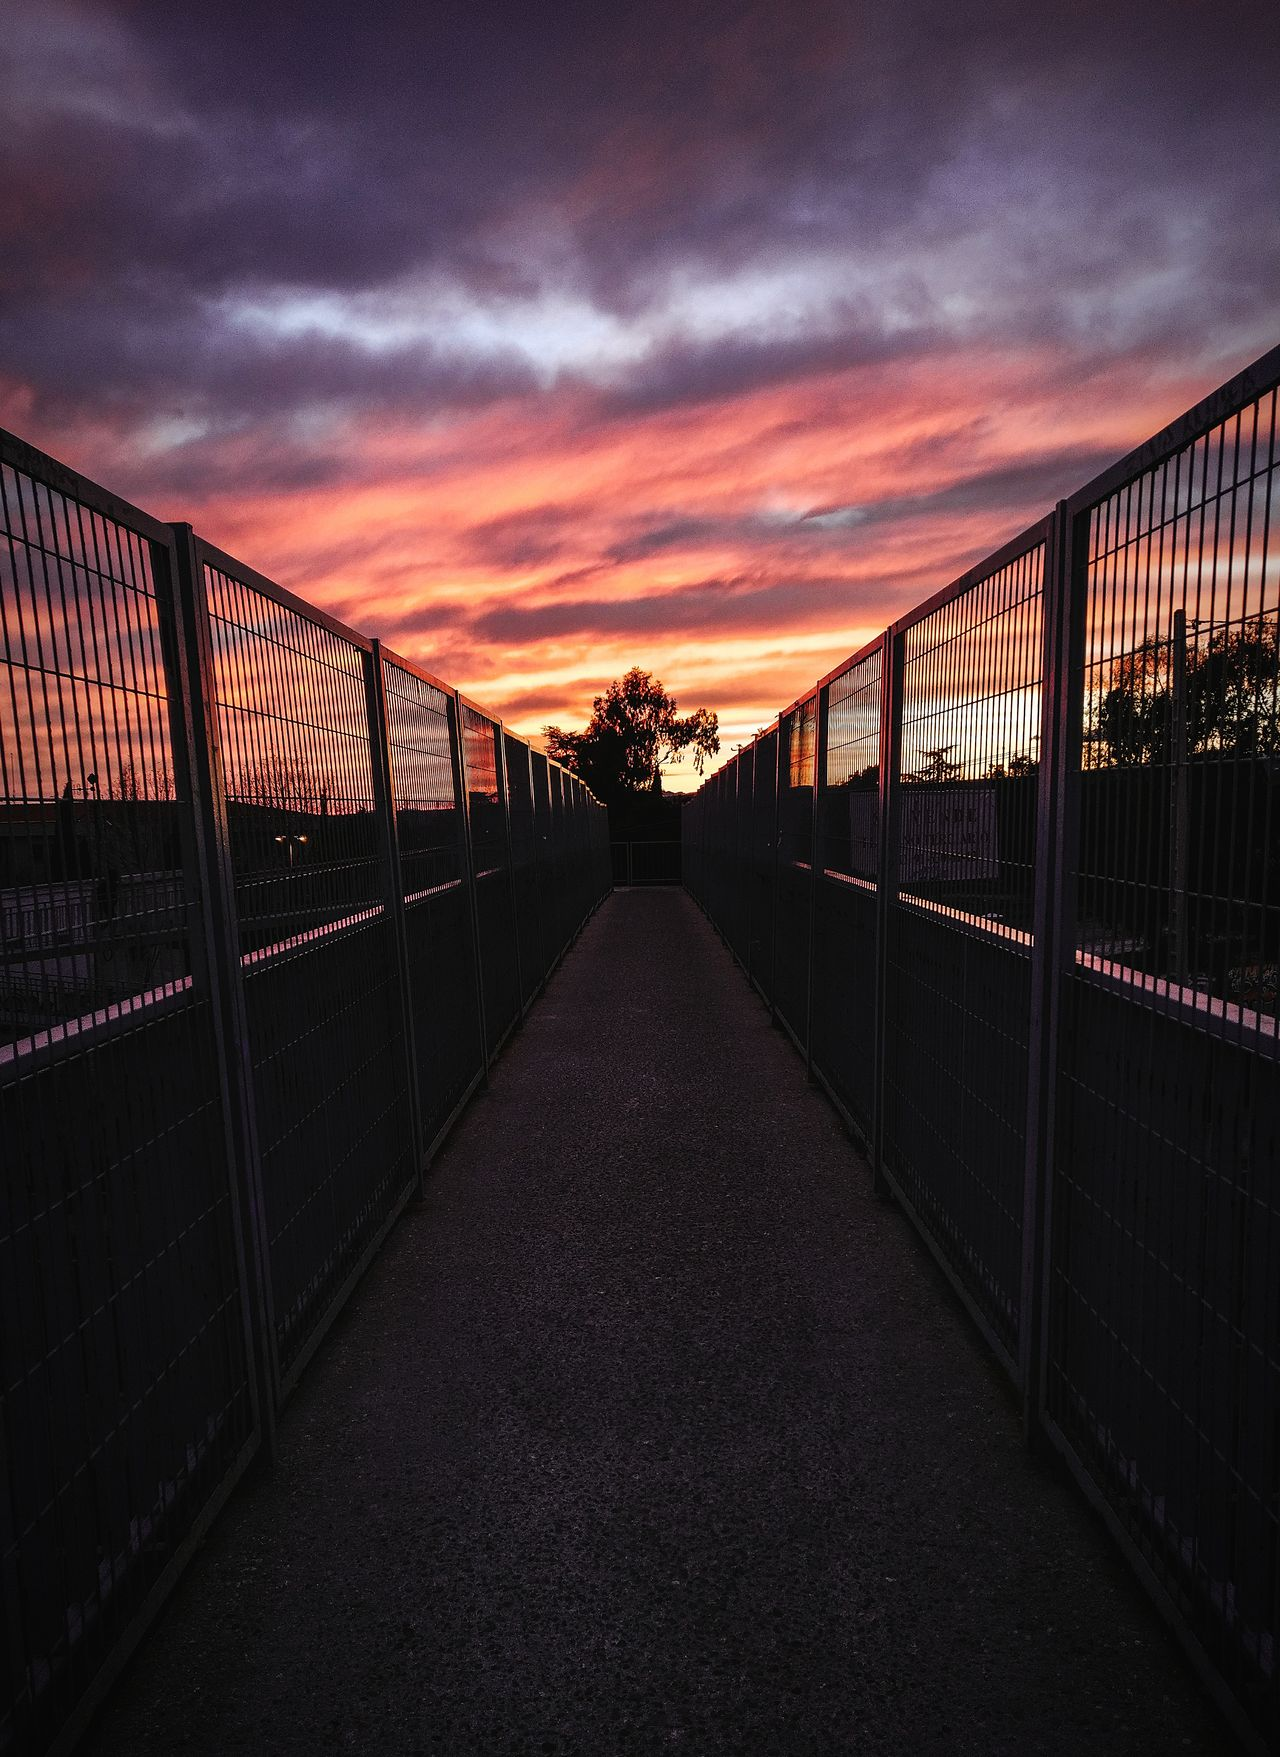 Sunsets Sunset No People Sky Cloud - Sky Bridge - Man Made Structure Outdoors Nature Day